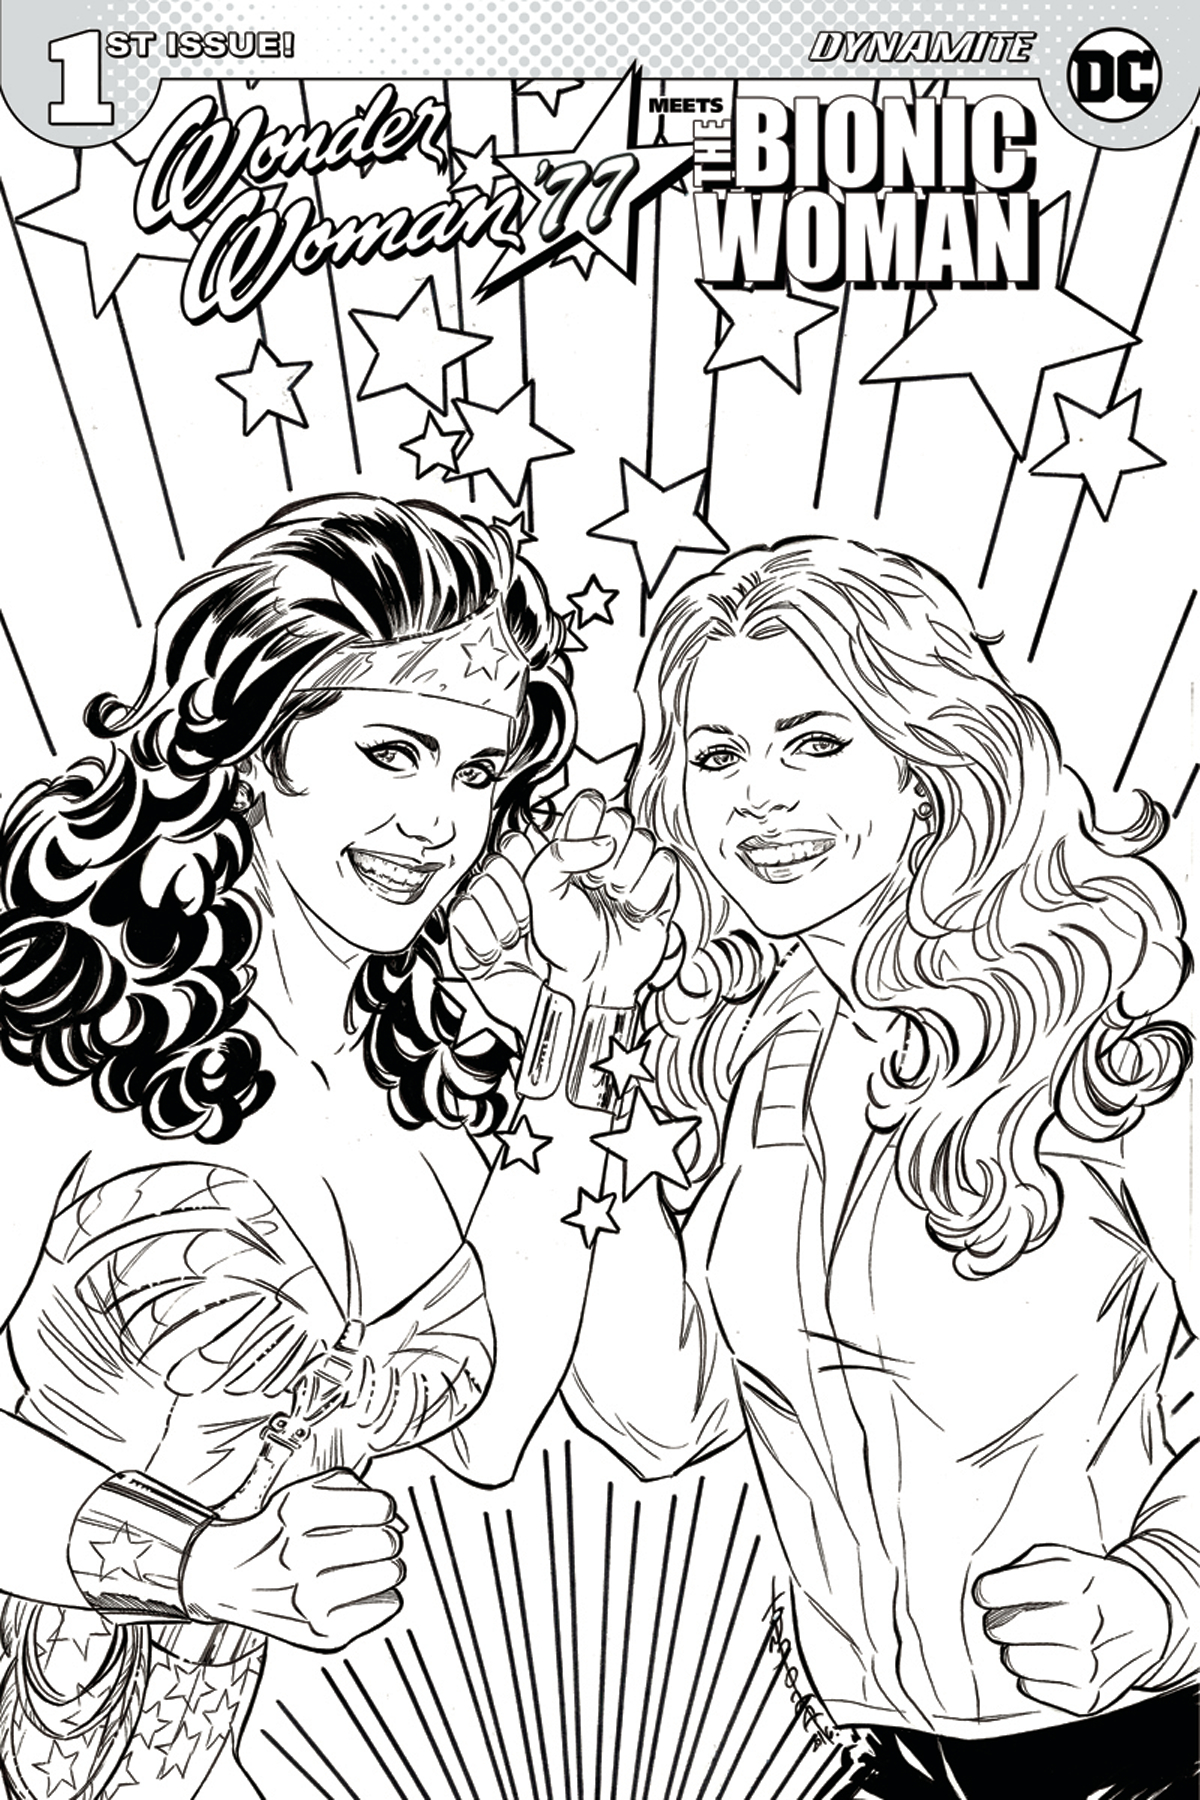 WONDER WOMAN 77 BIONIC WOMAN #1 (OF 6) CVR D COLORING BOOK